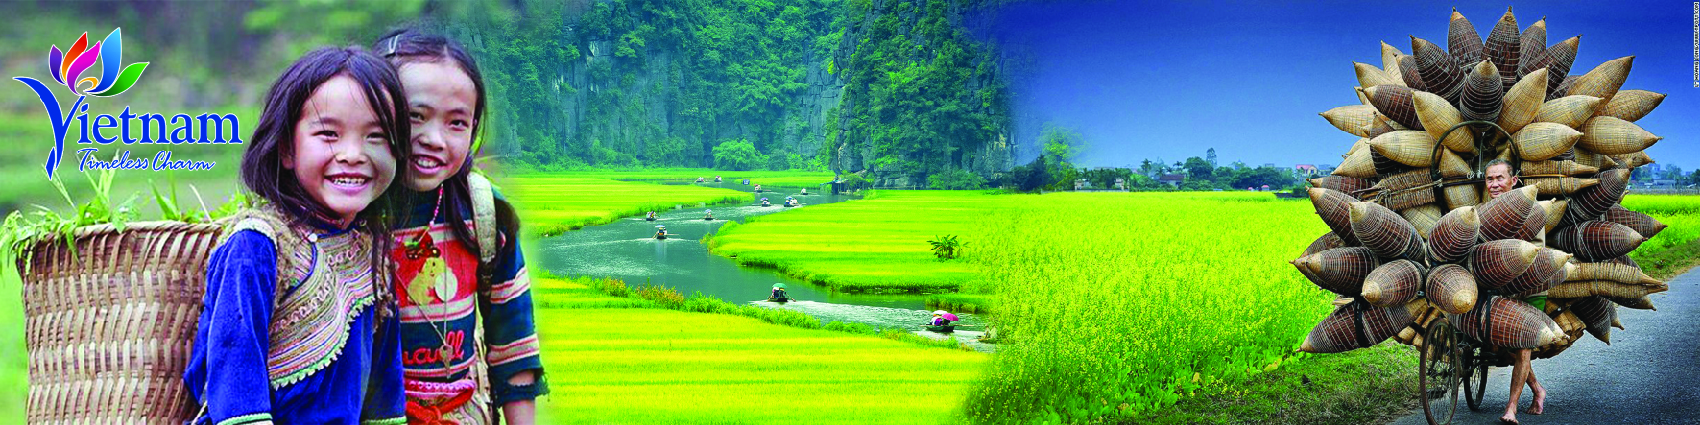 http://indochinatravelland.com/trails-of-the-north-vietnam-8-day-7-night